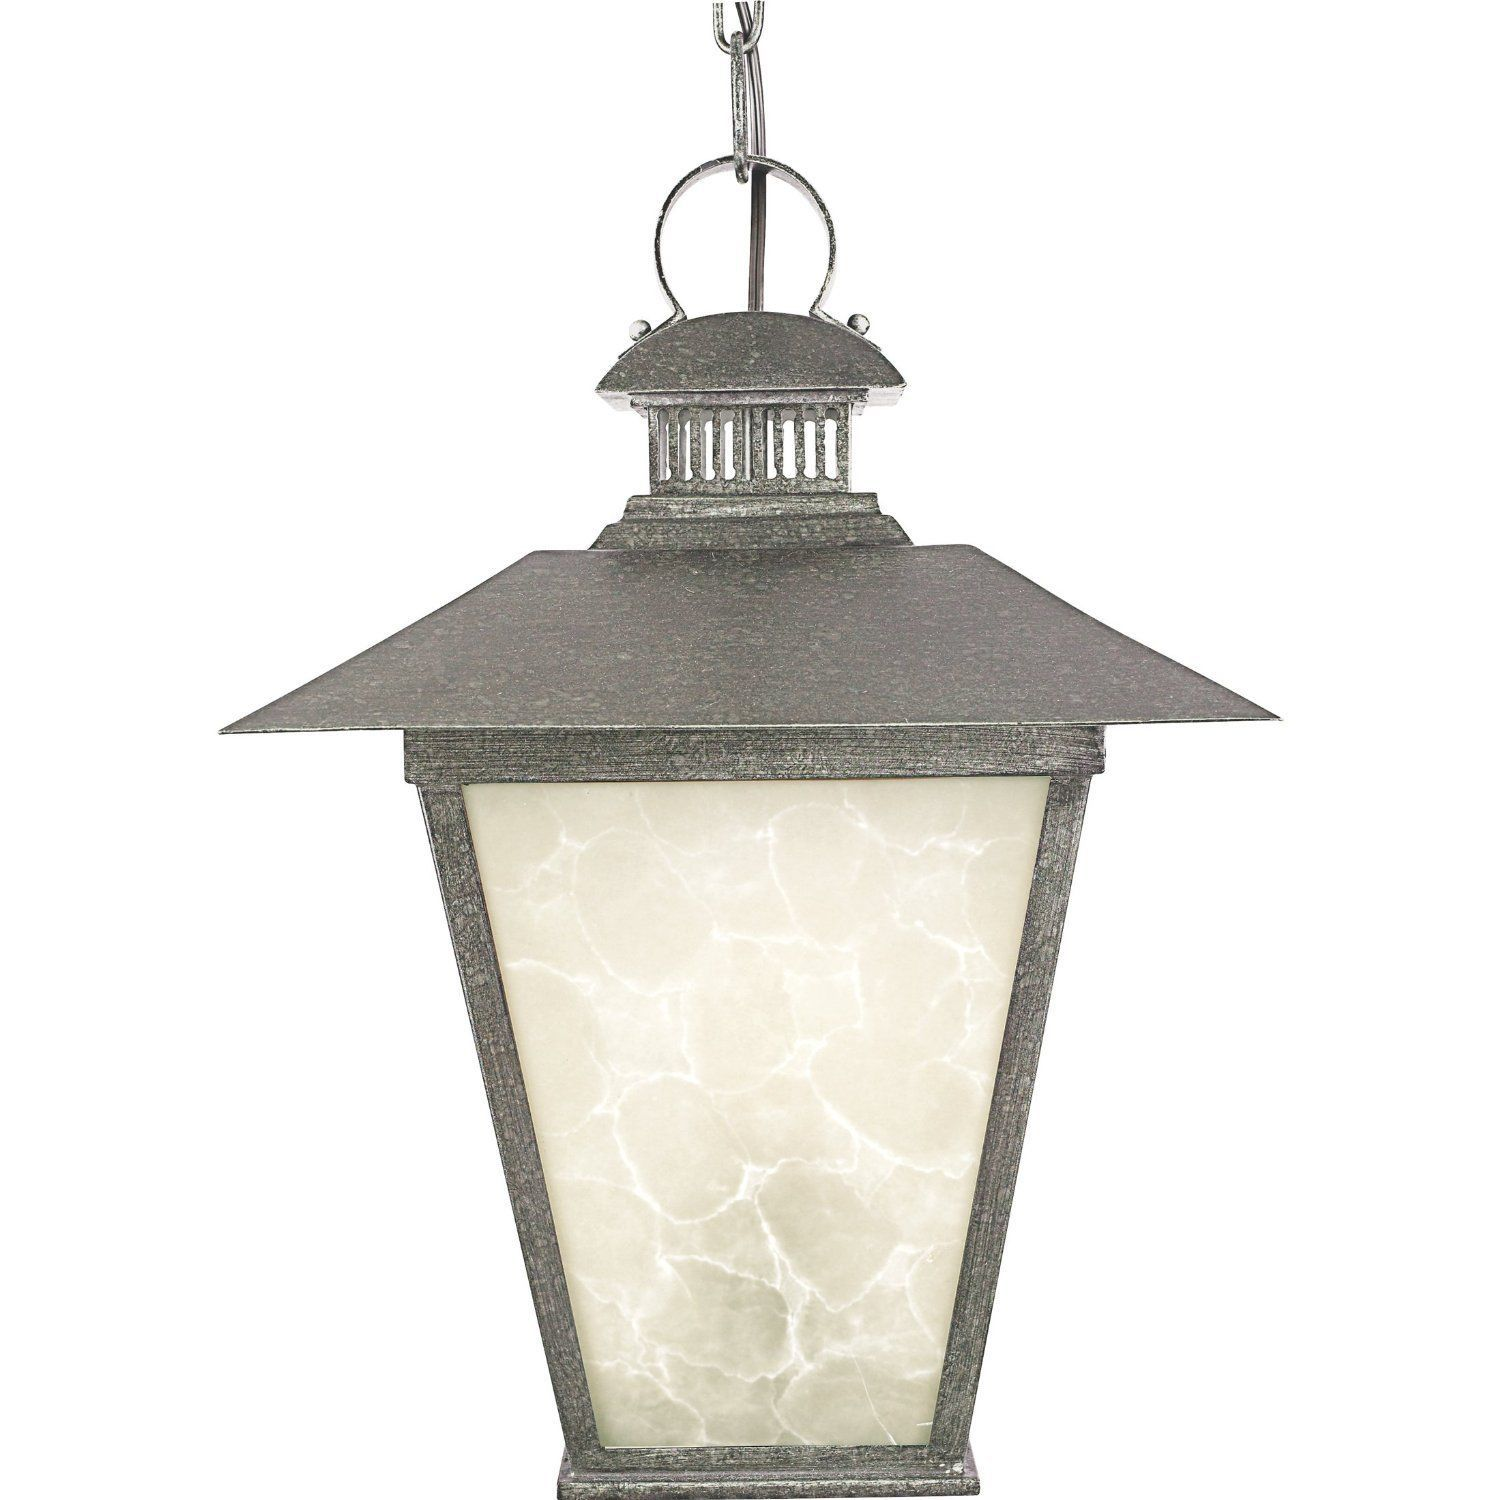 Quoizel Lighting Outdoor Outside Hanging Lantern Marble Glass Rustic Style